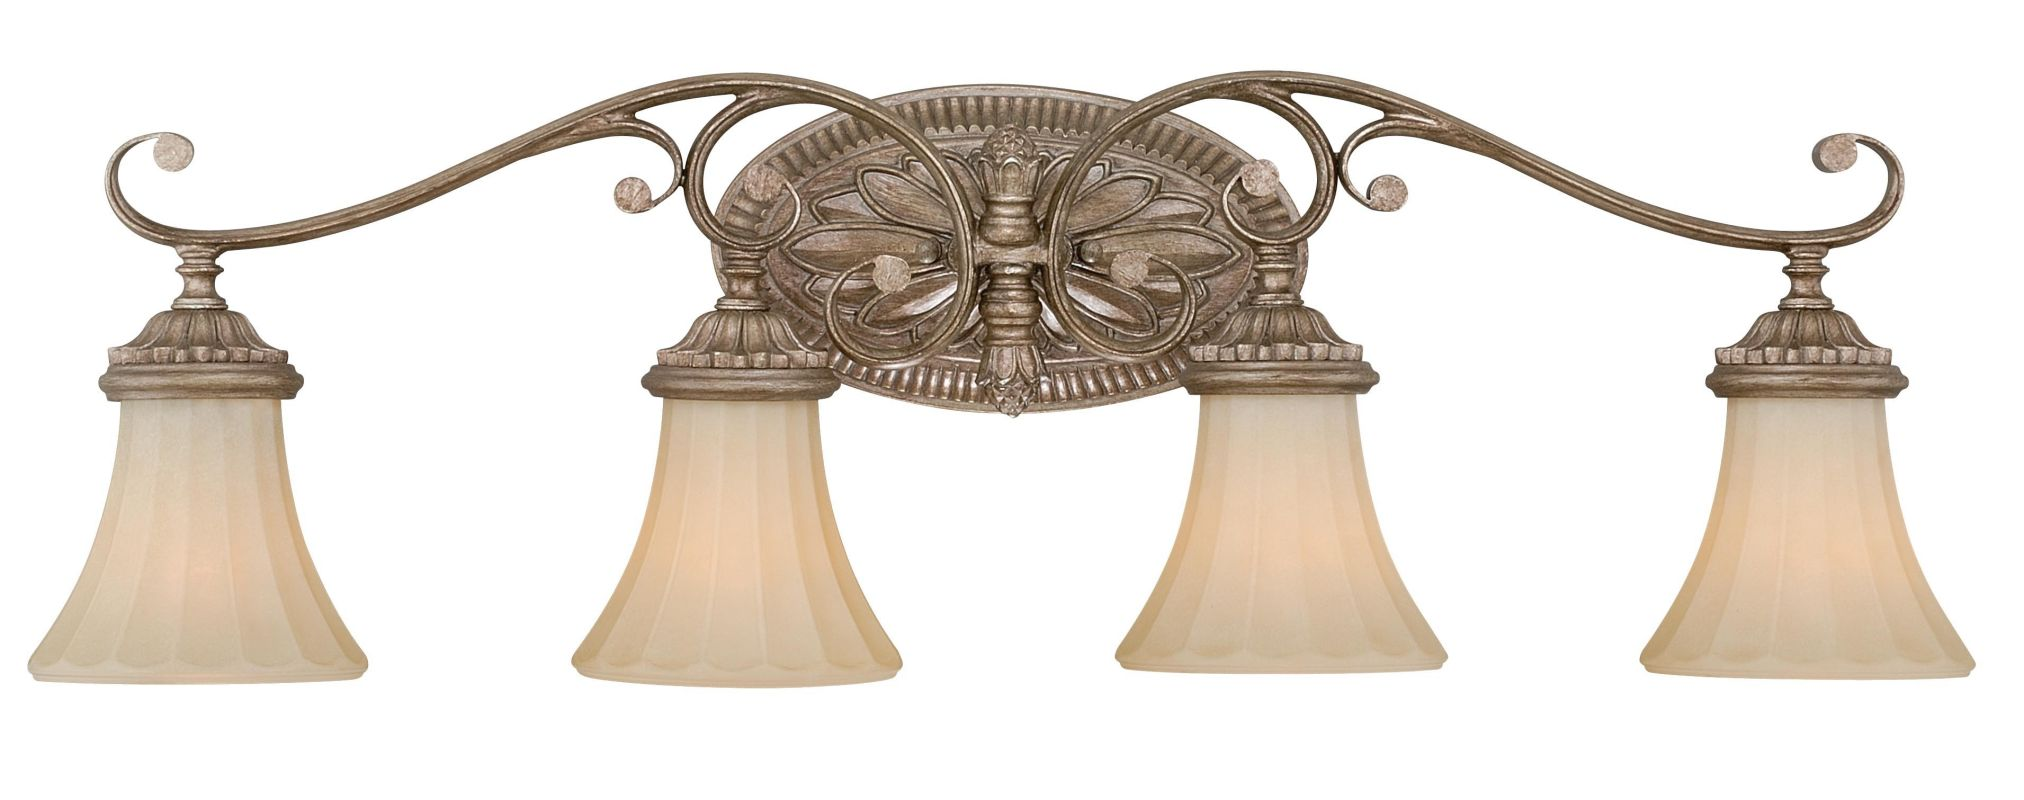 Vaxcel Lighting W0157 Avenant 4 Light Vanity Light French Bronze Sale $225.00 ITEM: bci2628383 ID#:W0157 UPC: 884656733037 :